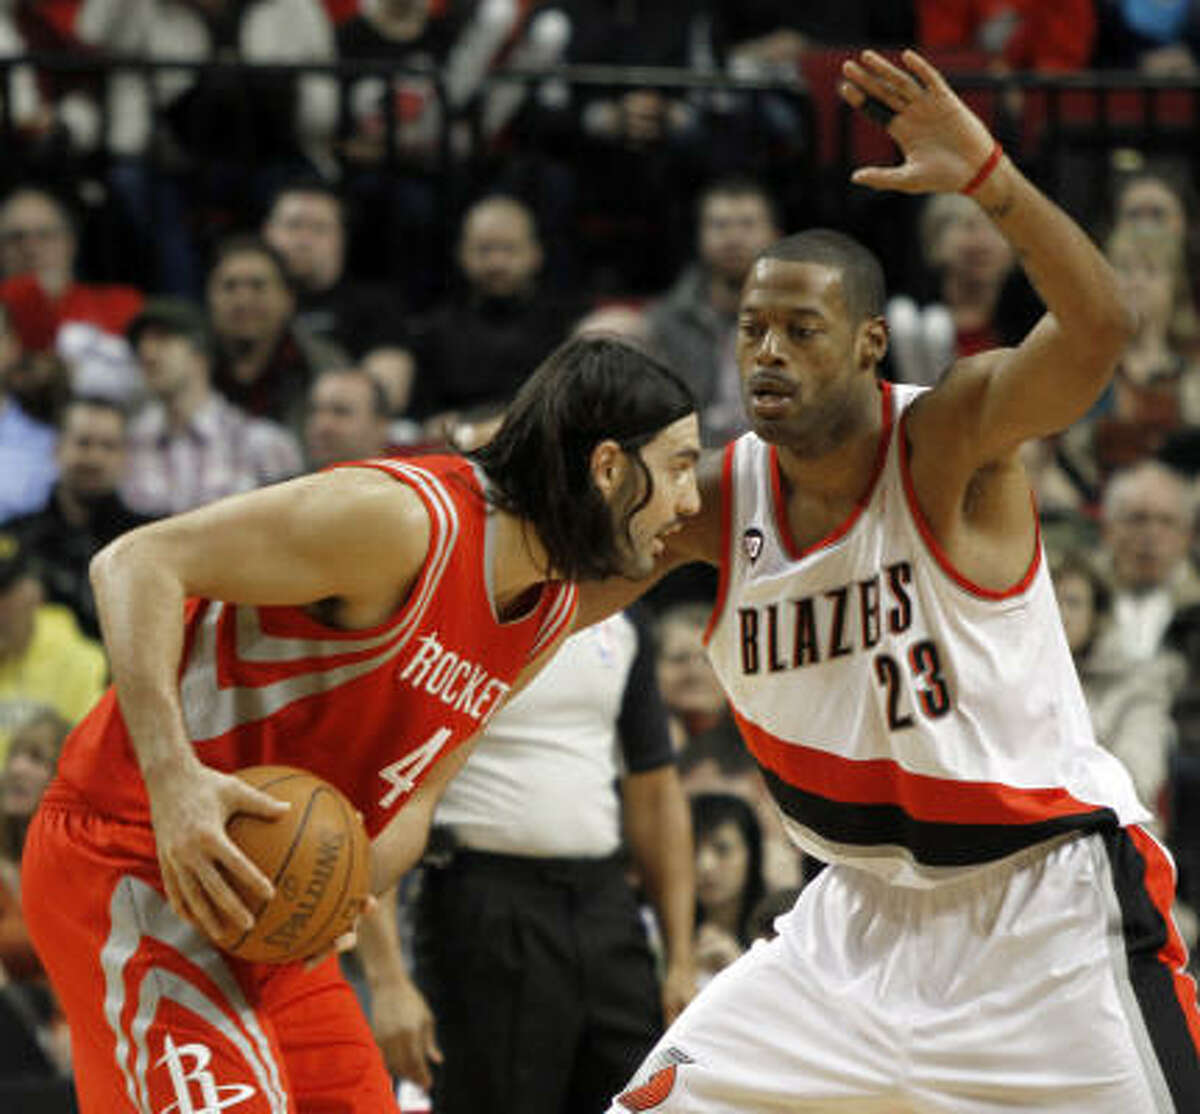 Rockets forward Luis Scola, left, looks for room against Trail Blazers center Marcus Camby.